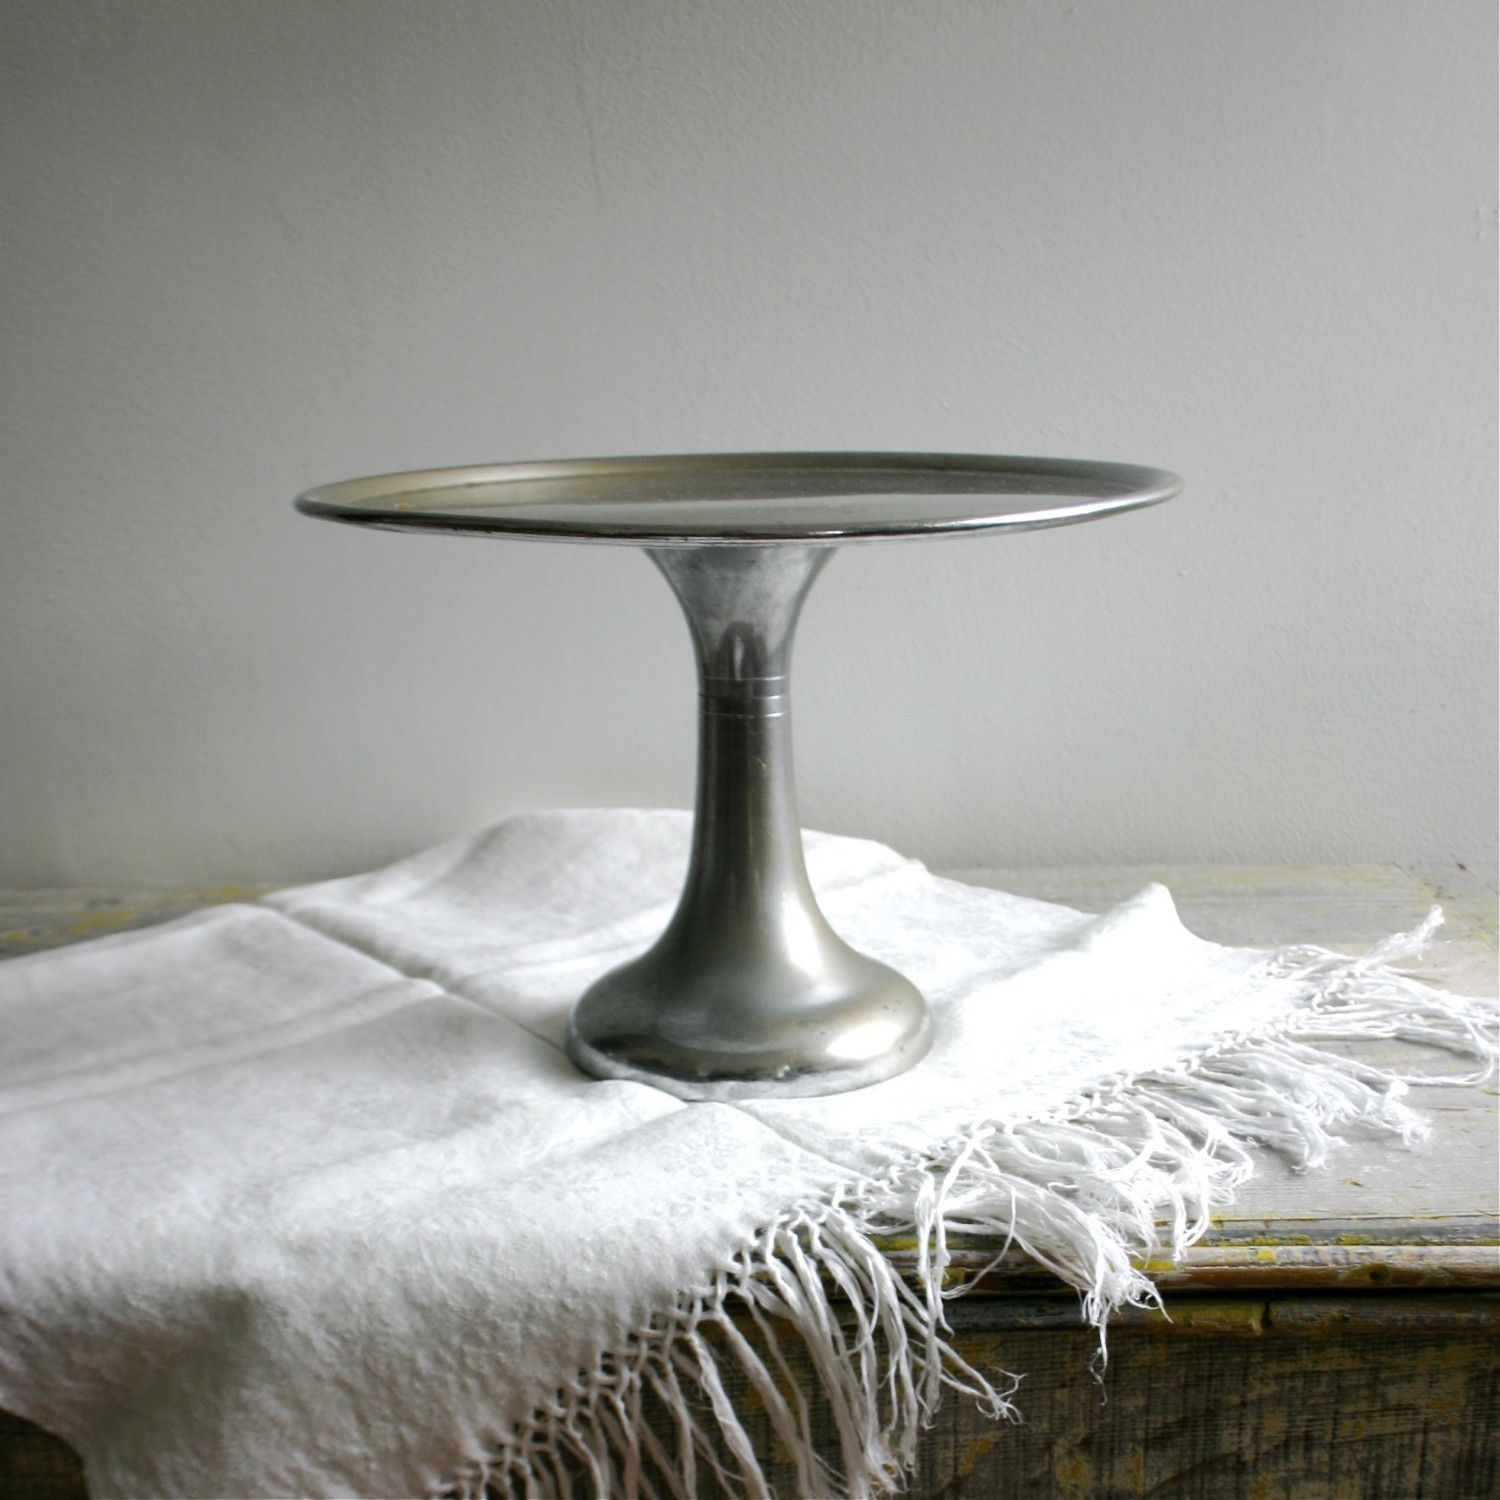 Vintage Industrial New York Bakery Cake Stand